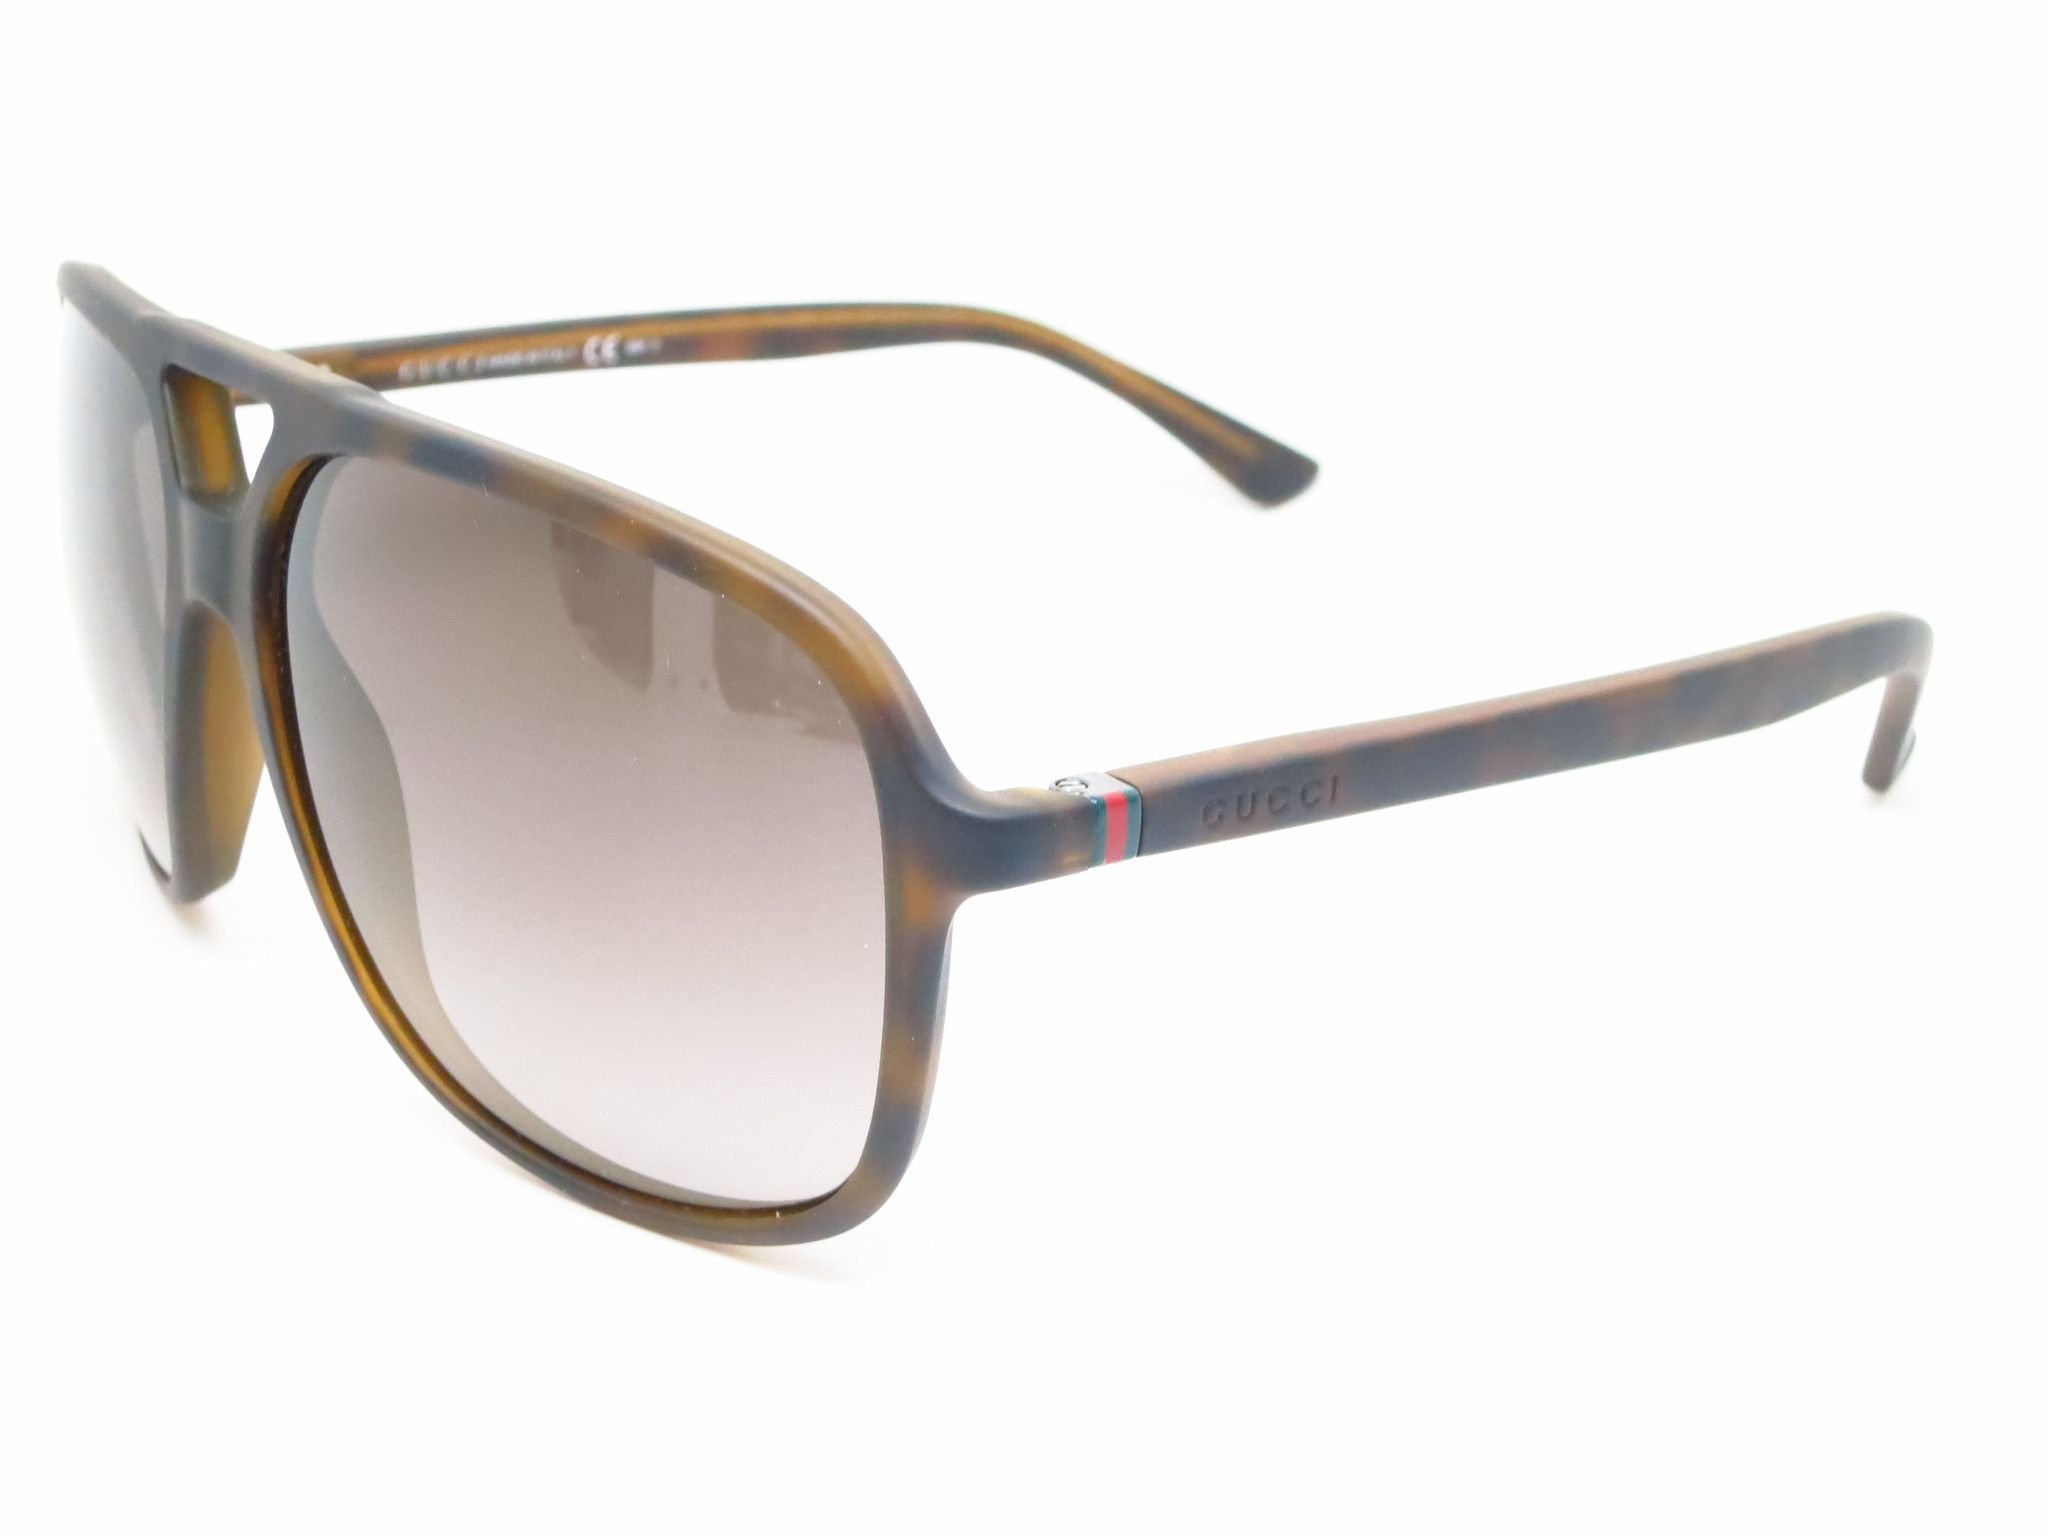 cfe27ac5f1b Gucci GG 1091 S Product Details Brand Name   Gucci Model Number   GG 1091